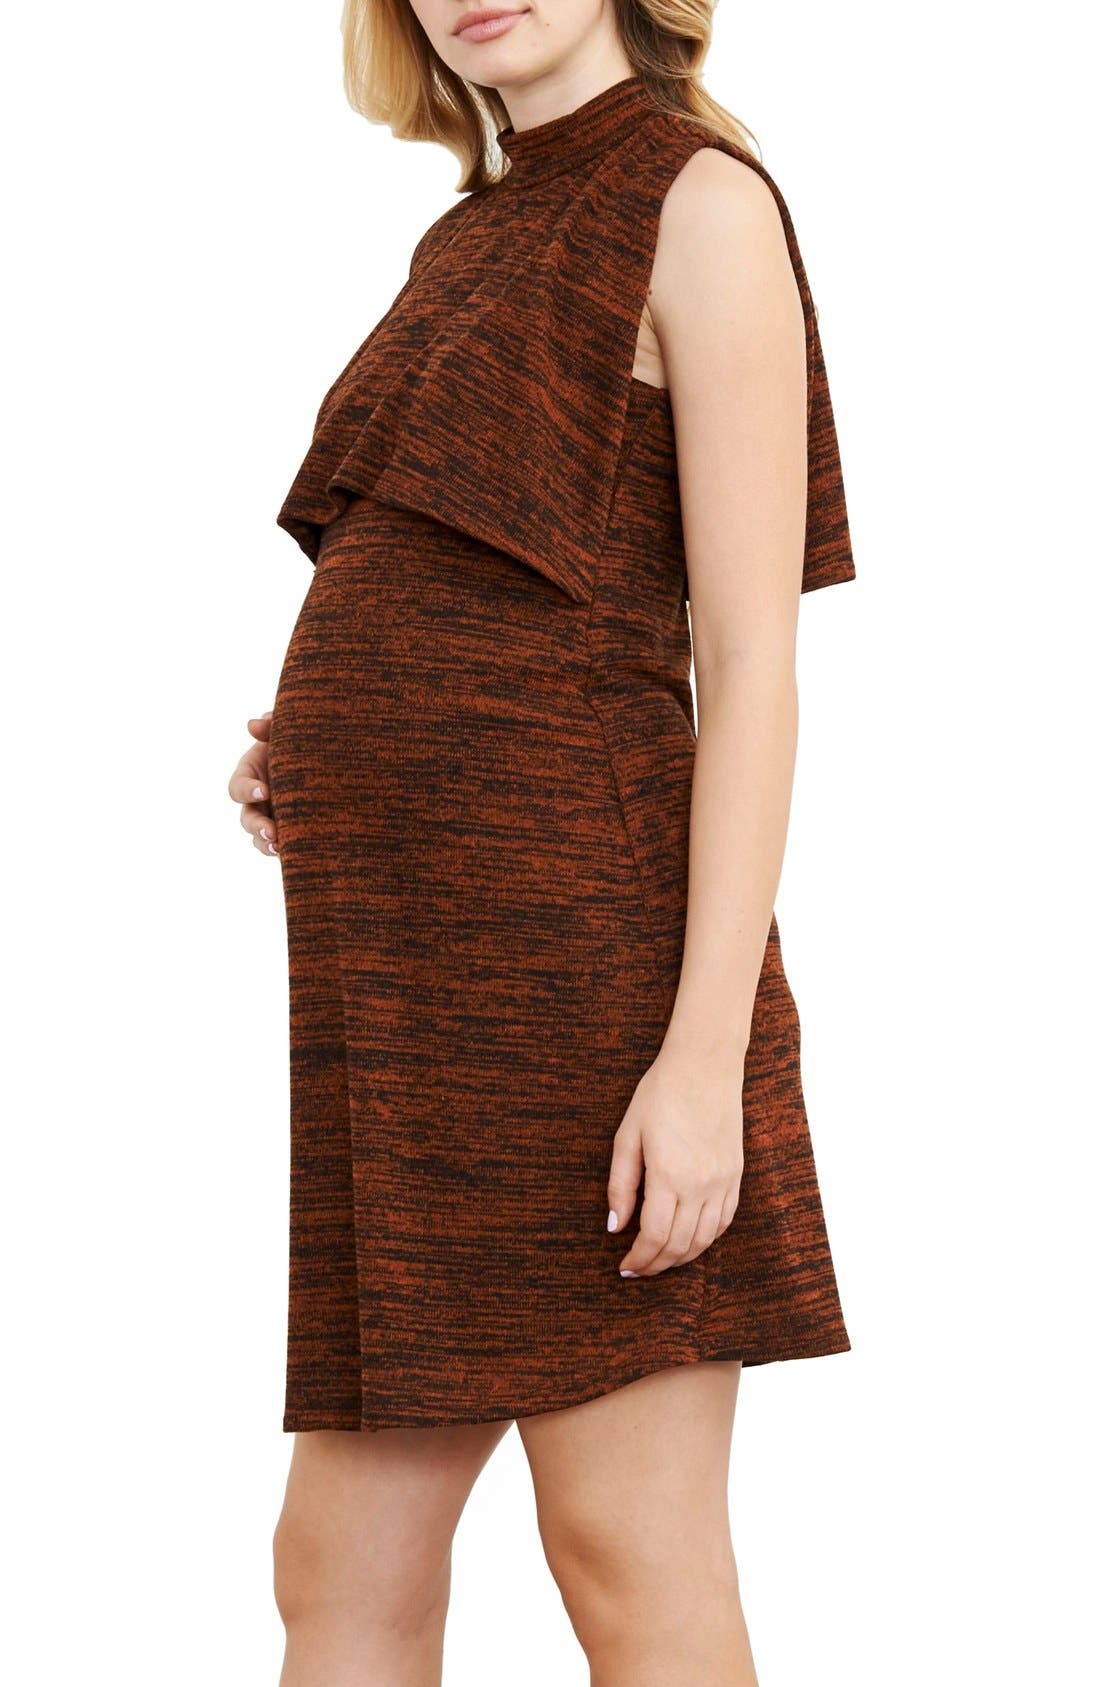 Maternal America Maternity/Nursing Knit Dress